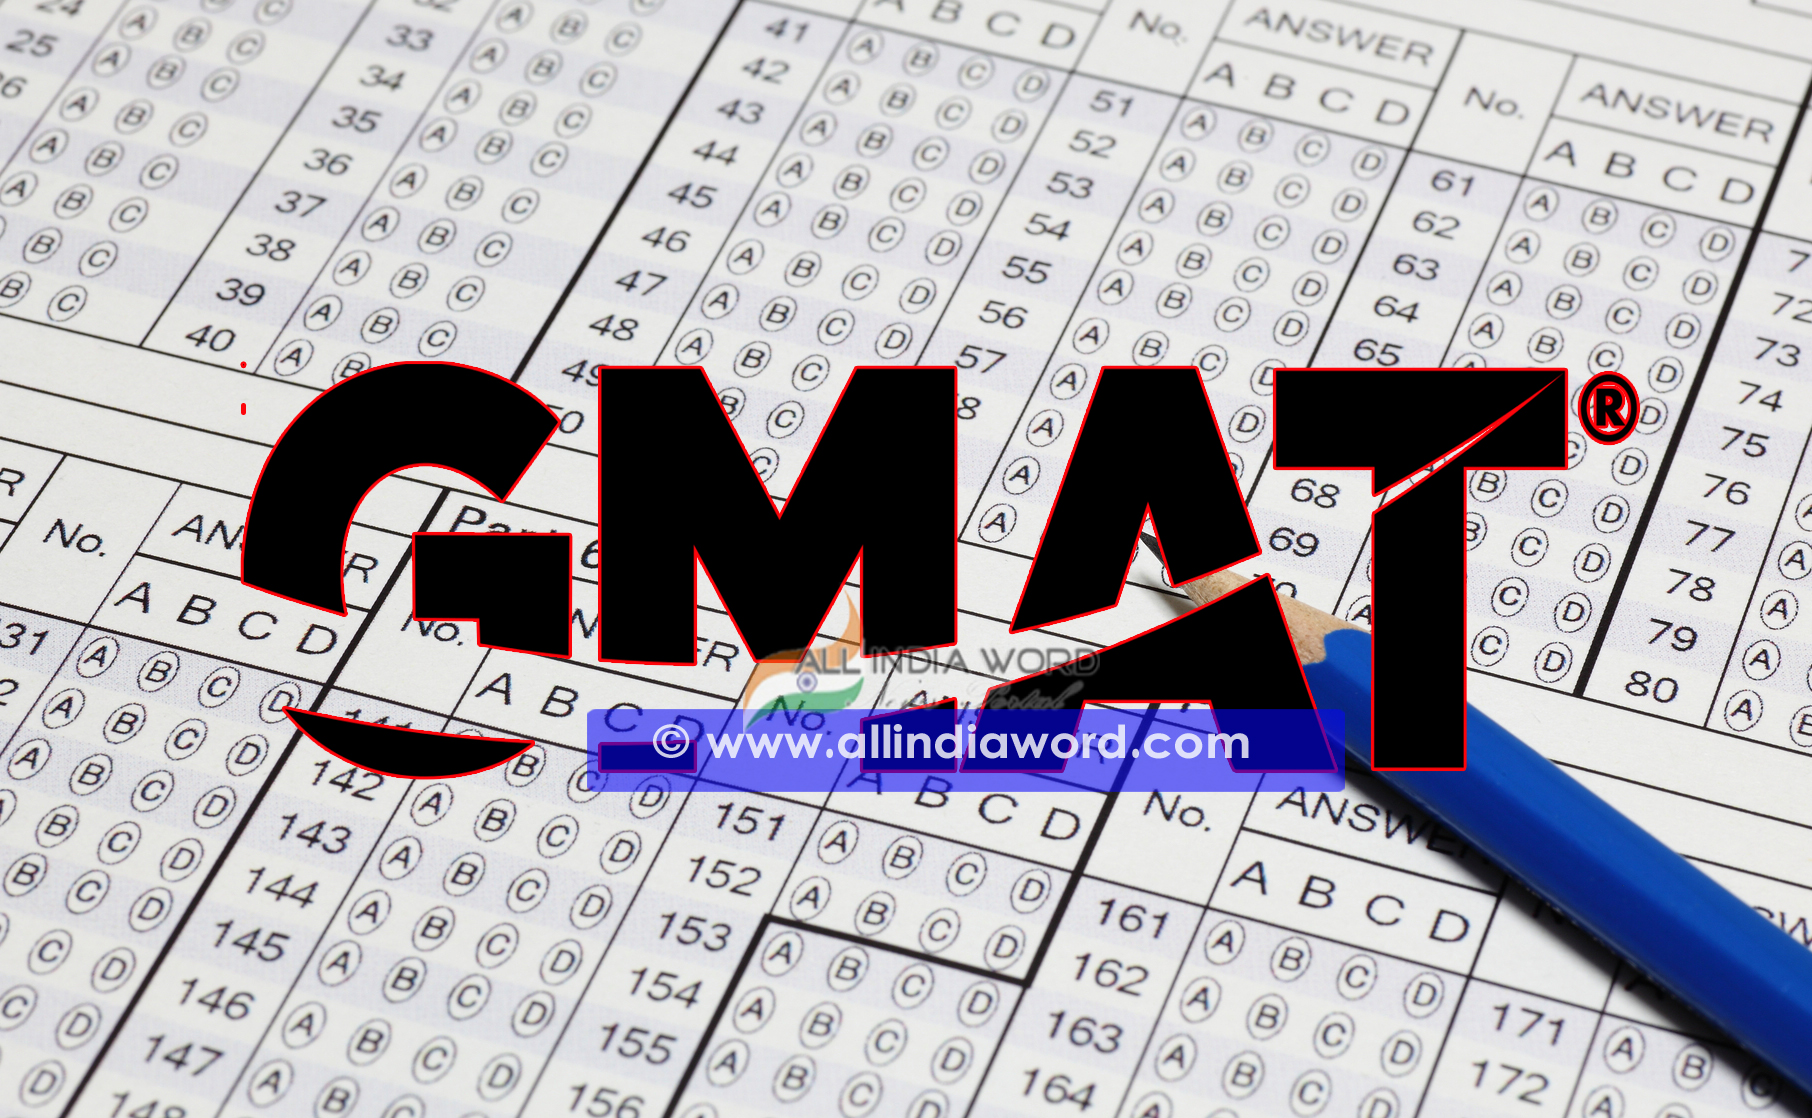 How Gmat Had Changed In Past 10 Years In Education. Gps Tracking For Work Trucks. Seaview Rehabilitation Center. Medicare Supplement Insurance Leads. How Can I Study Online Nursing Field Of Study. Wesleyan College Connecticut. Inventory Control Definition. Weight Loss Surgery In Houston. Creative Thinking Techniques